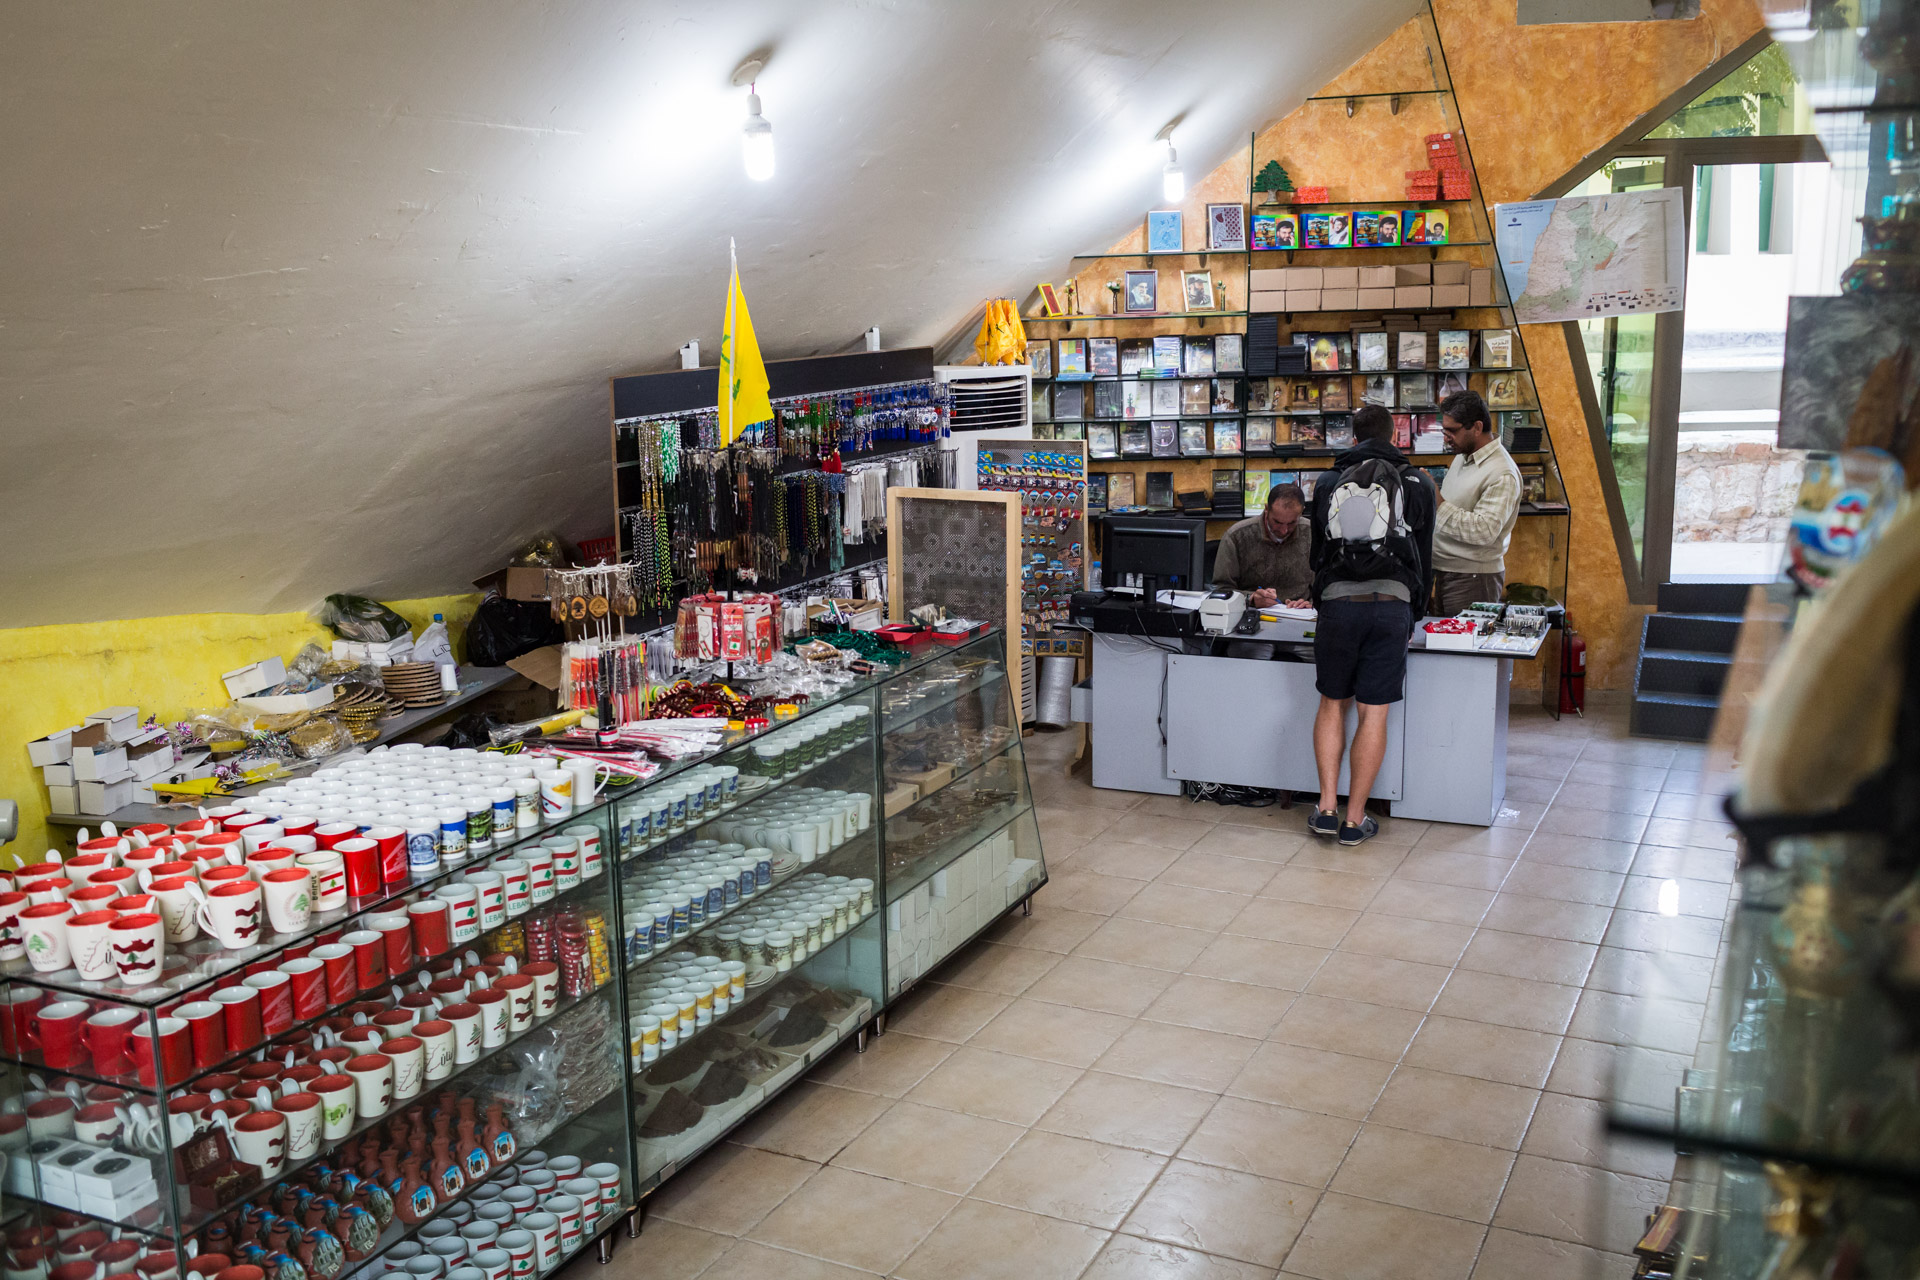 Like any other museum, Mleeta has a gift shop. Unlike other museums, it offers souvenirs featuring logos and ideas from an organisation that is branded a terrorist organisation by most western countries.